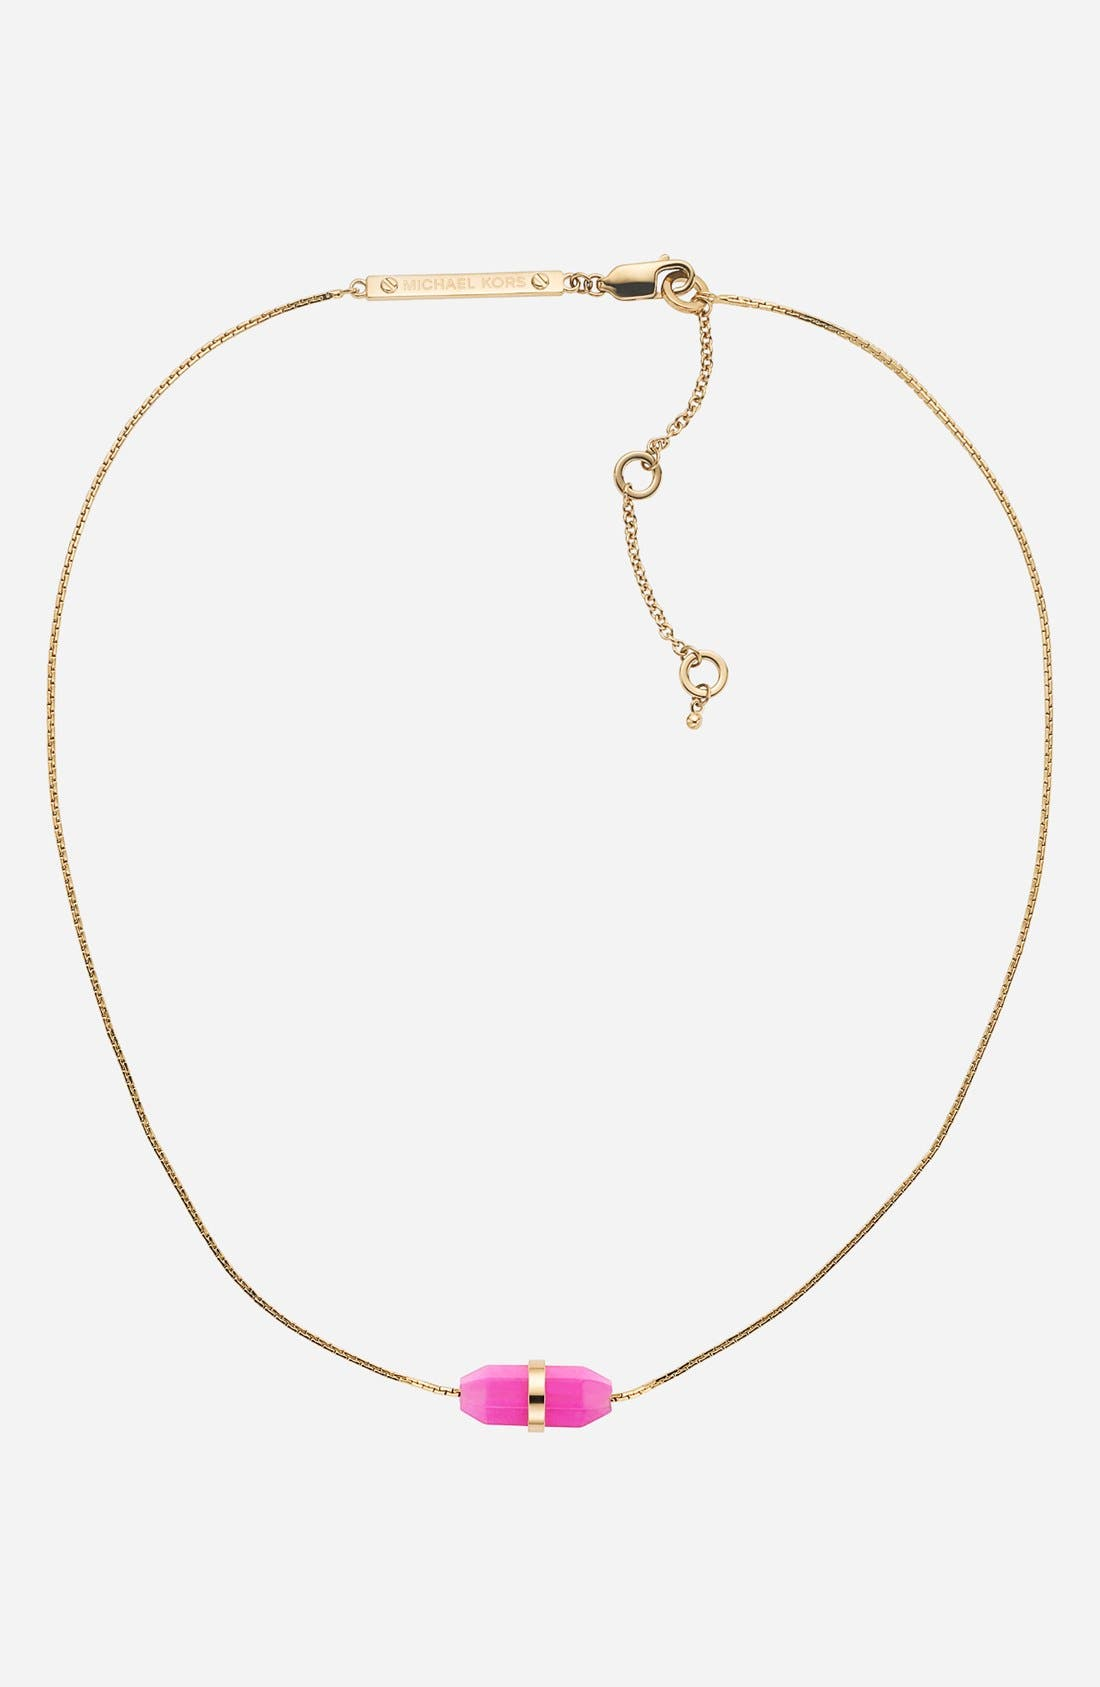 Alternate Image 1 Selected - Michael Kors 'Seaside Luxe' Stone Pendant Necklace